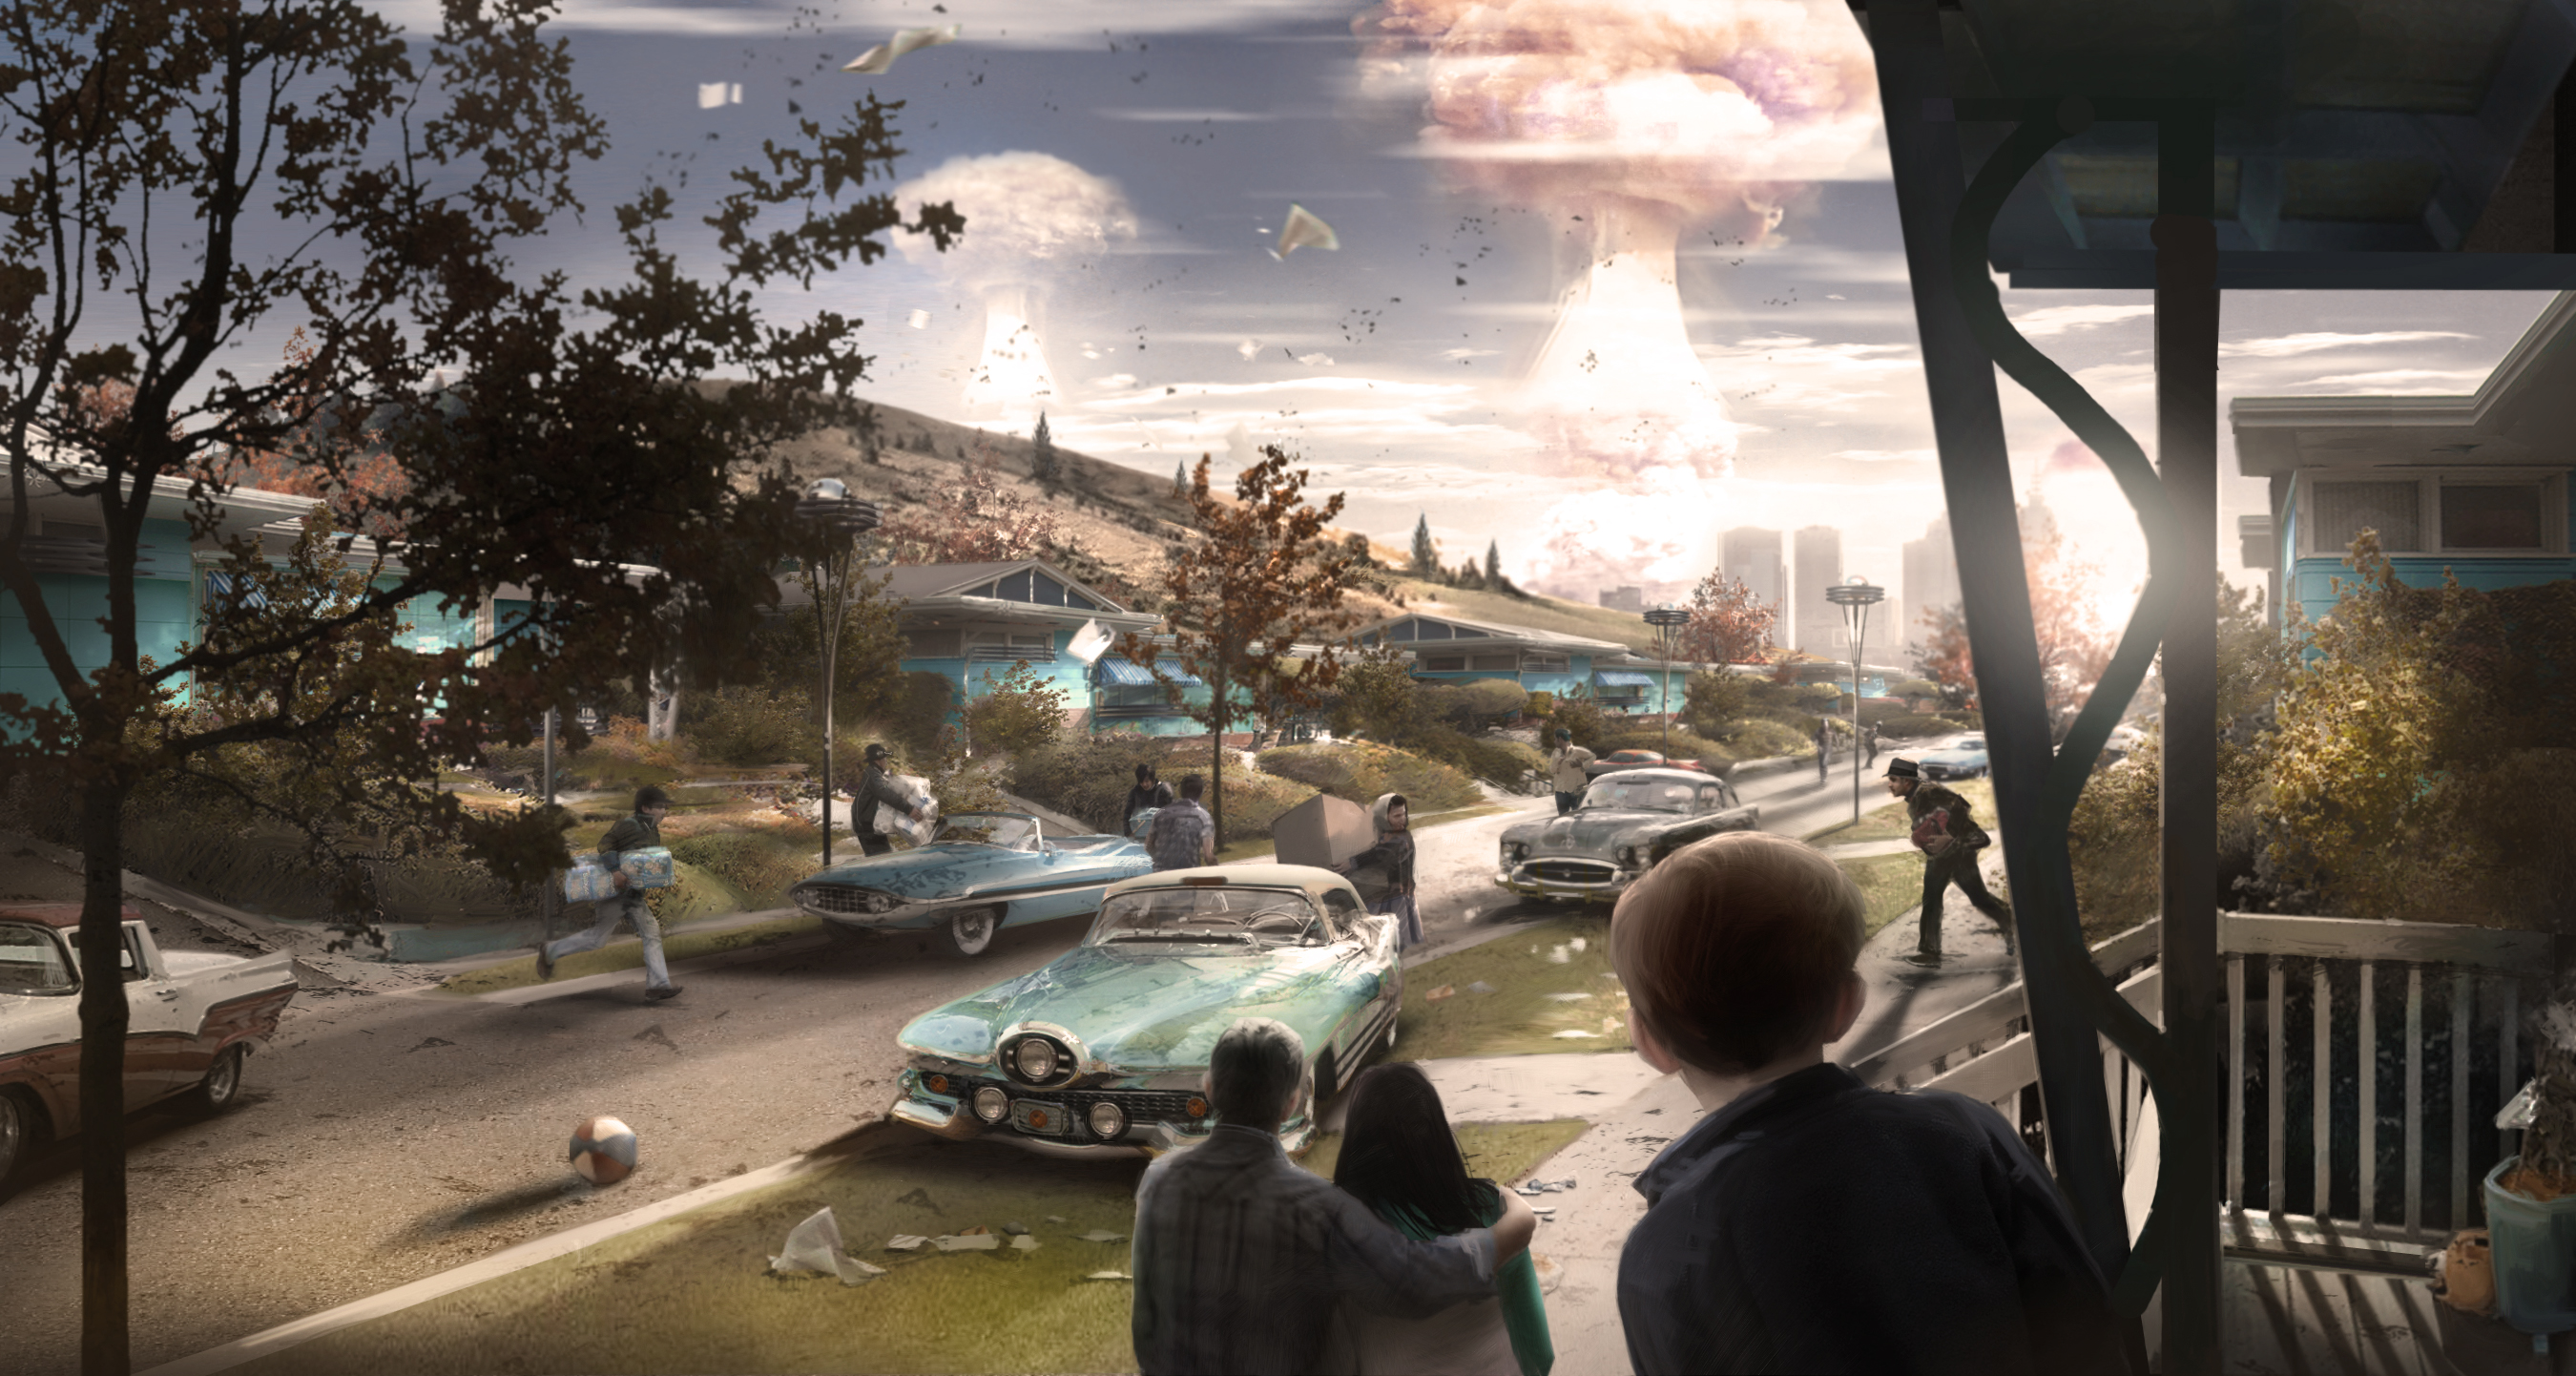 The Last Sci-Fi Blog: Okay, It's Time to Make a 'Fallout' Movie